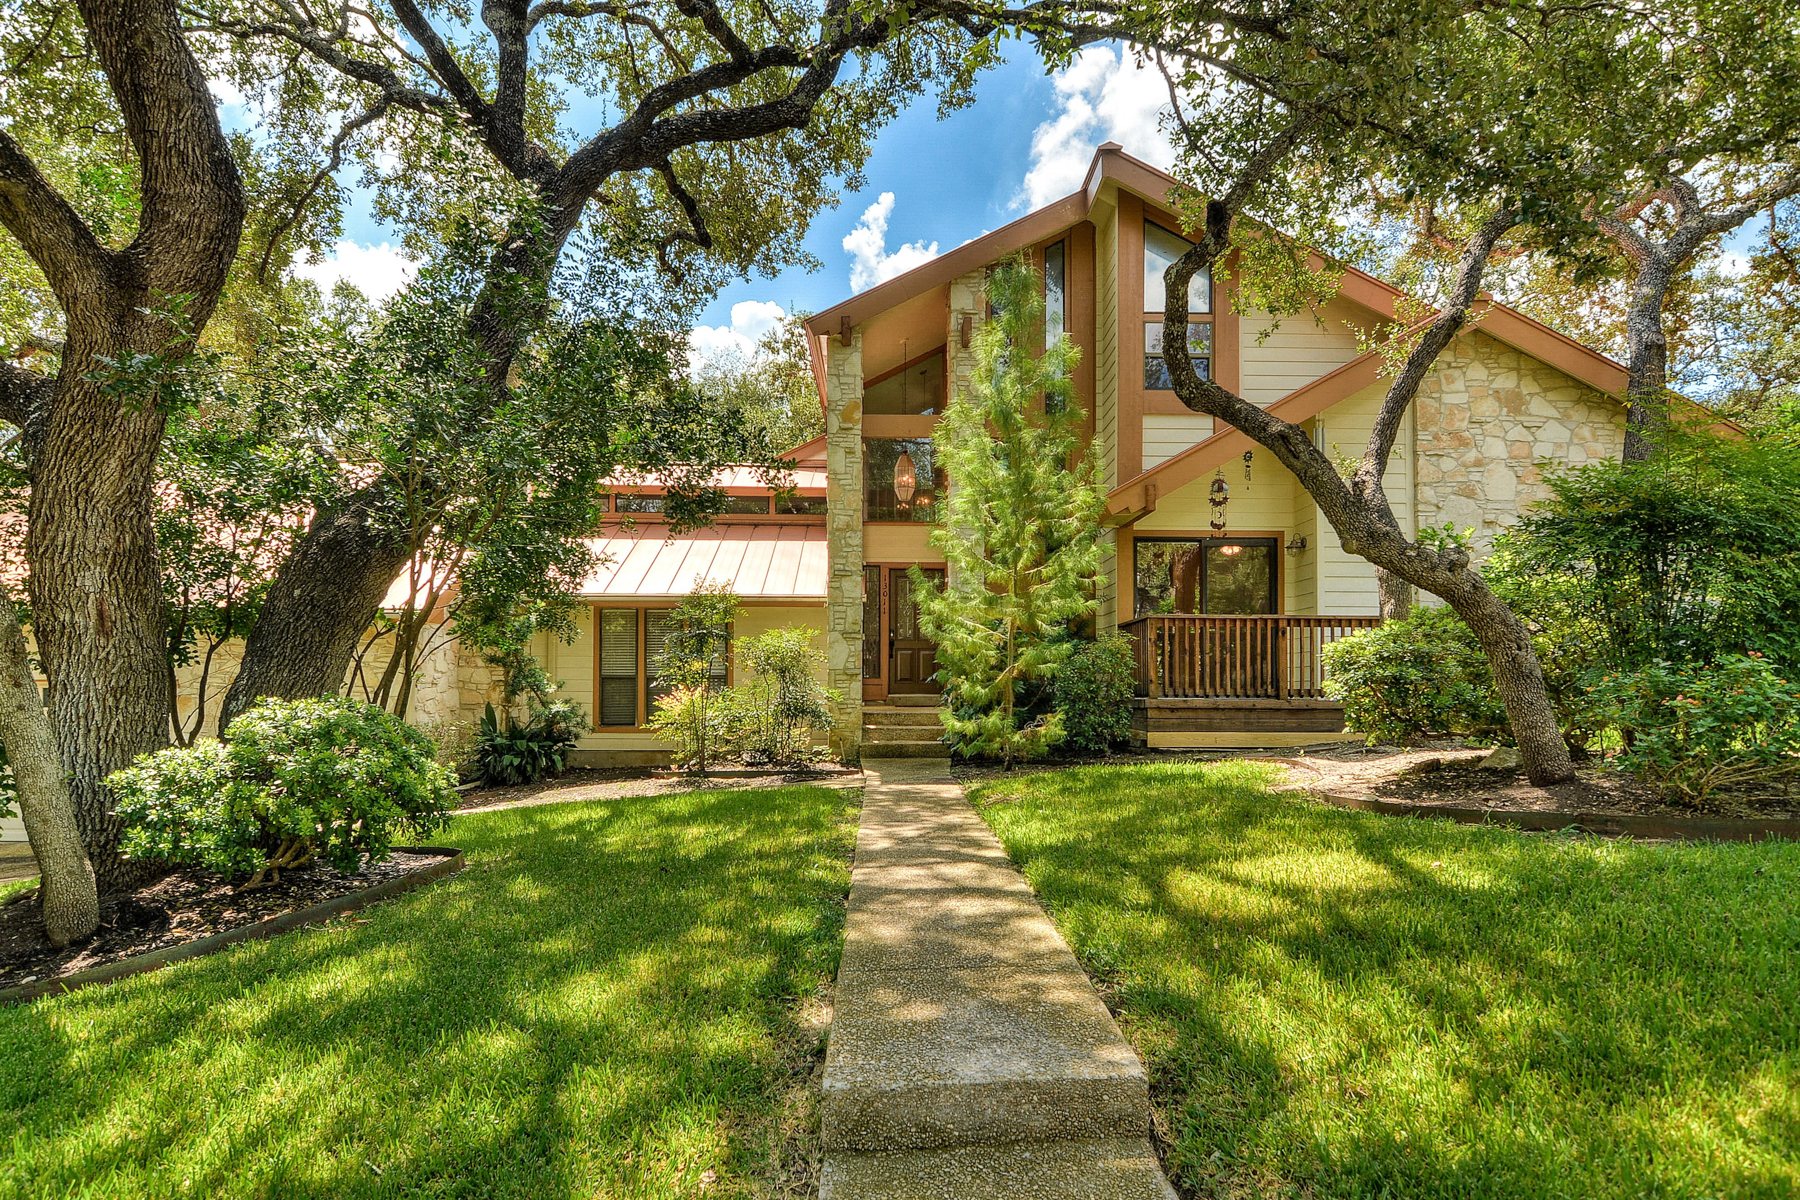 Single Family Home for Sale at Gem in the heart of Prime Hunters Creek 13011 Hunters Ledge San Antonio, Texas 78230 United States